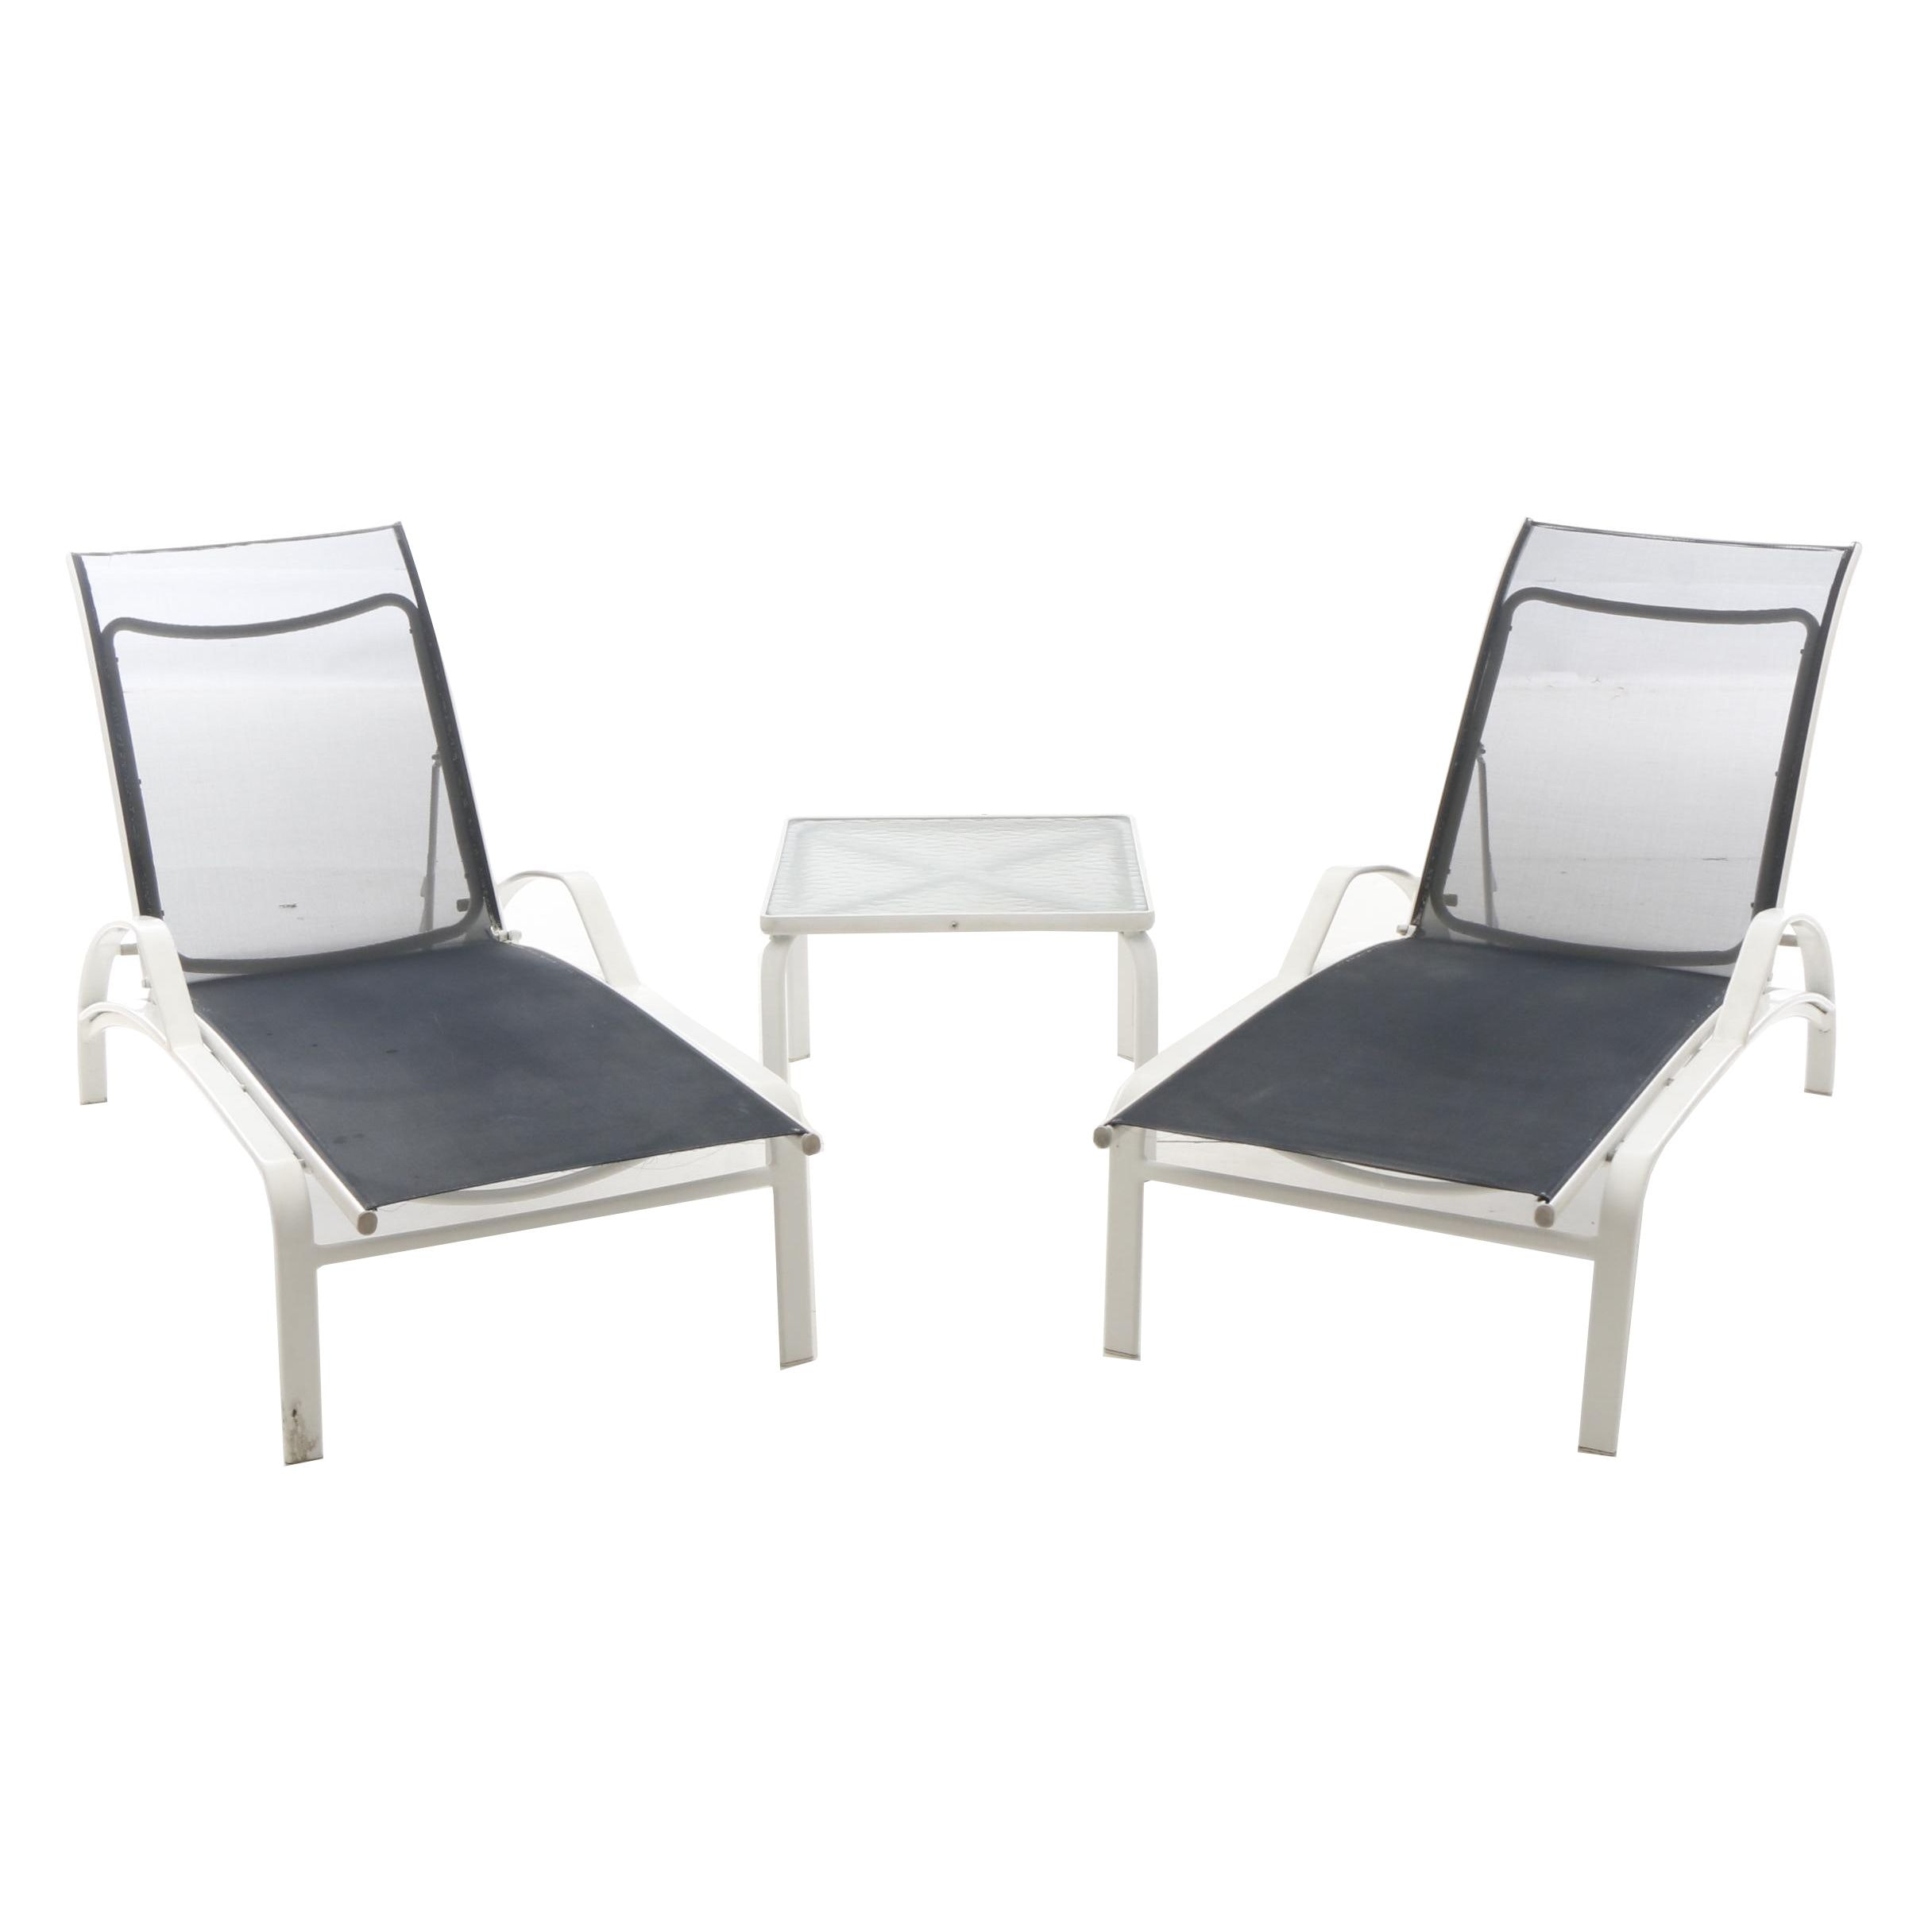 Patio Lounge Chairs and Side Table by Brown Jordan